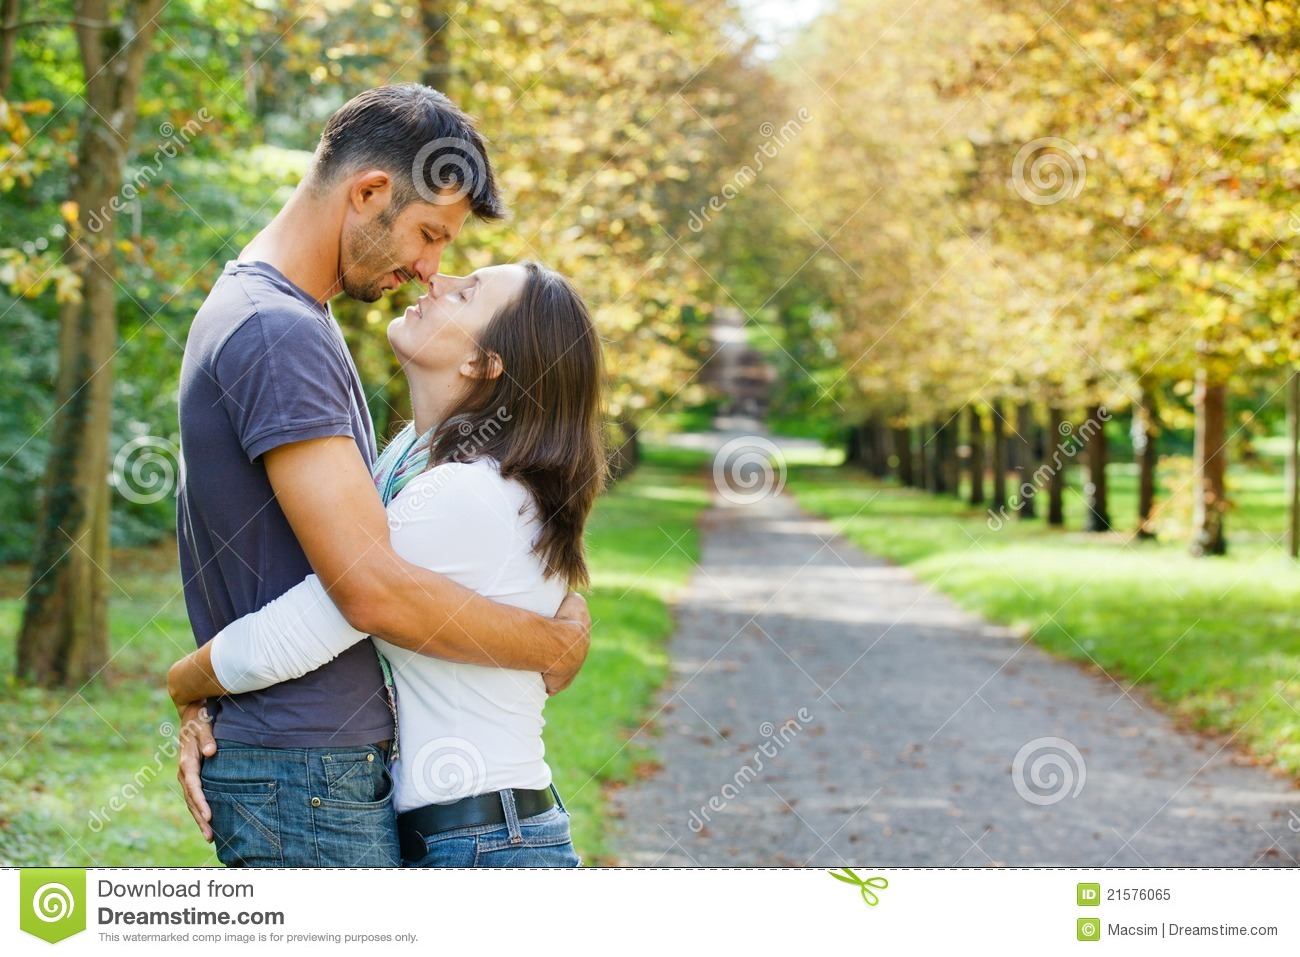 Royalty Free Stock Photo  Young Couple Walking in autumn parkYoung Couple Walking In The Park